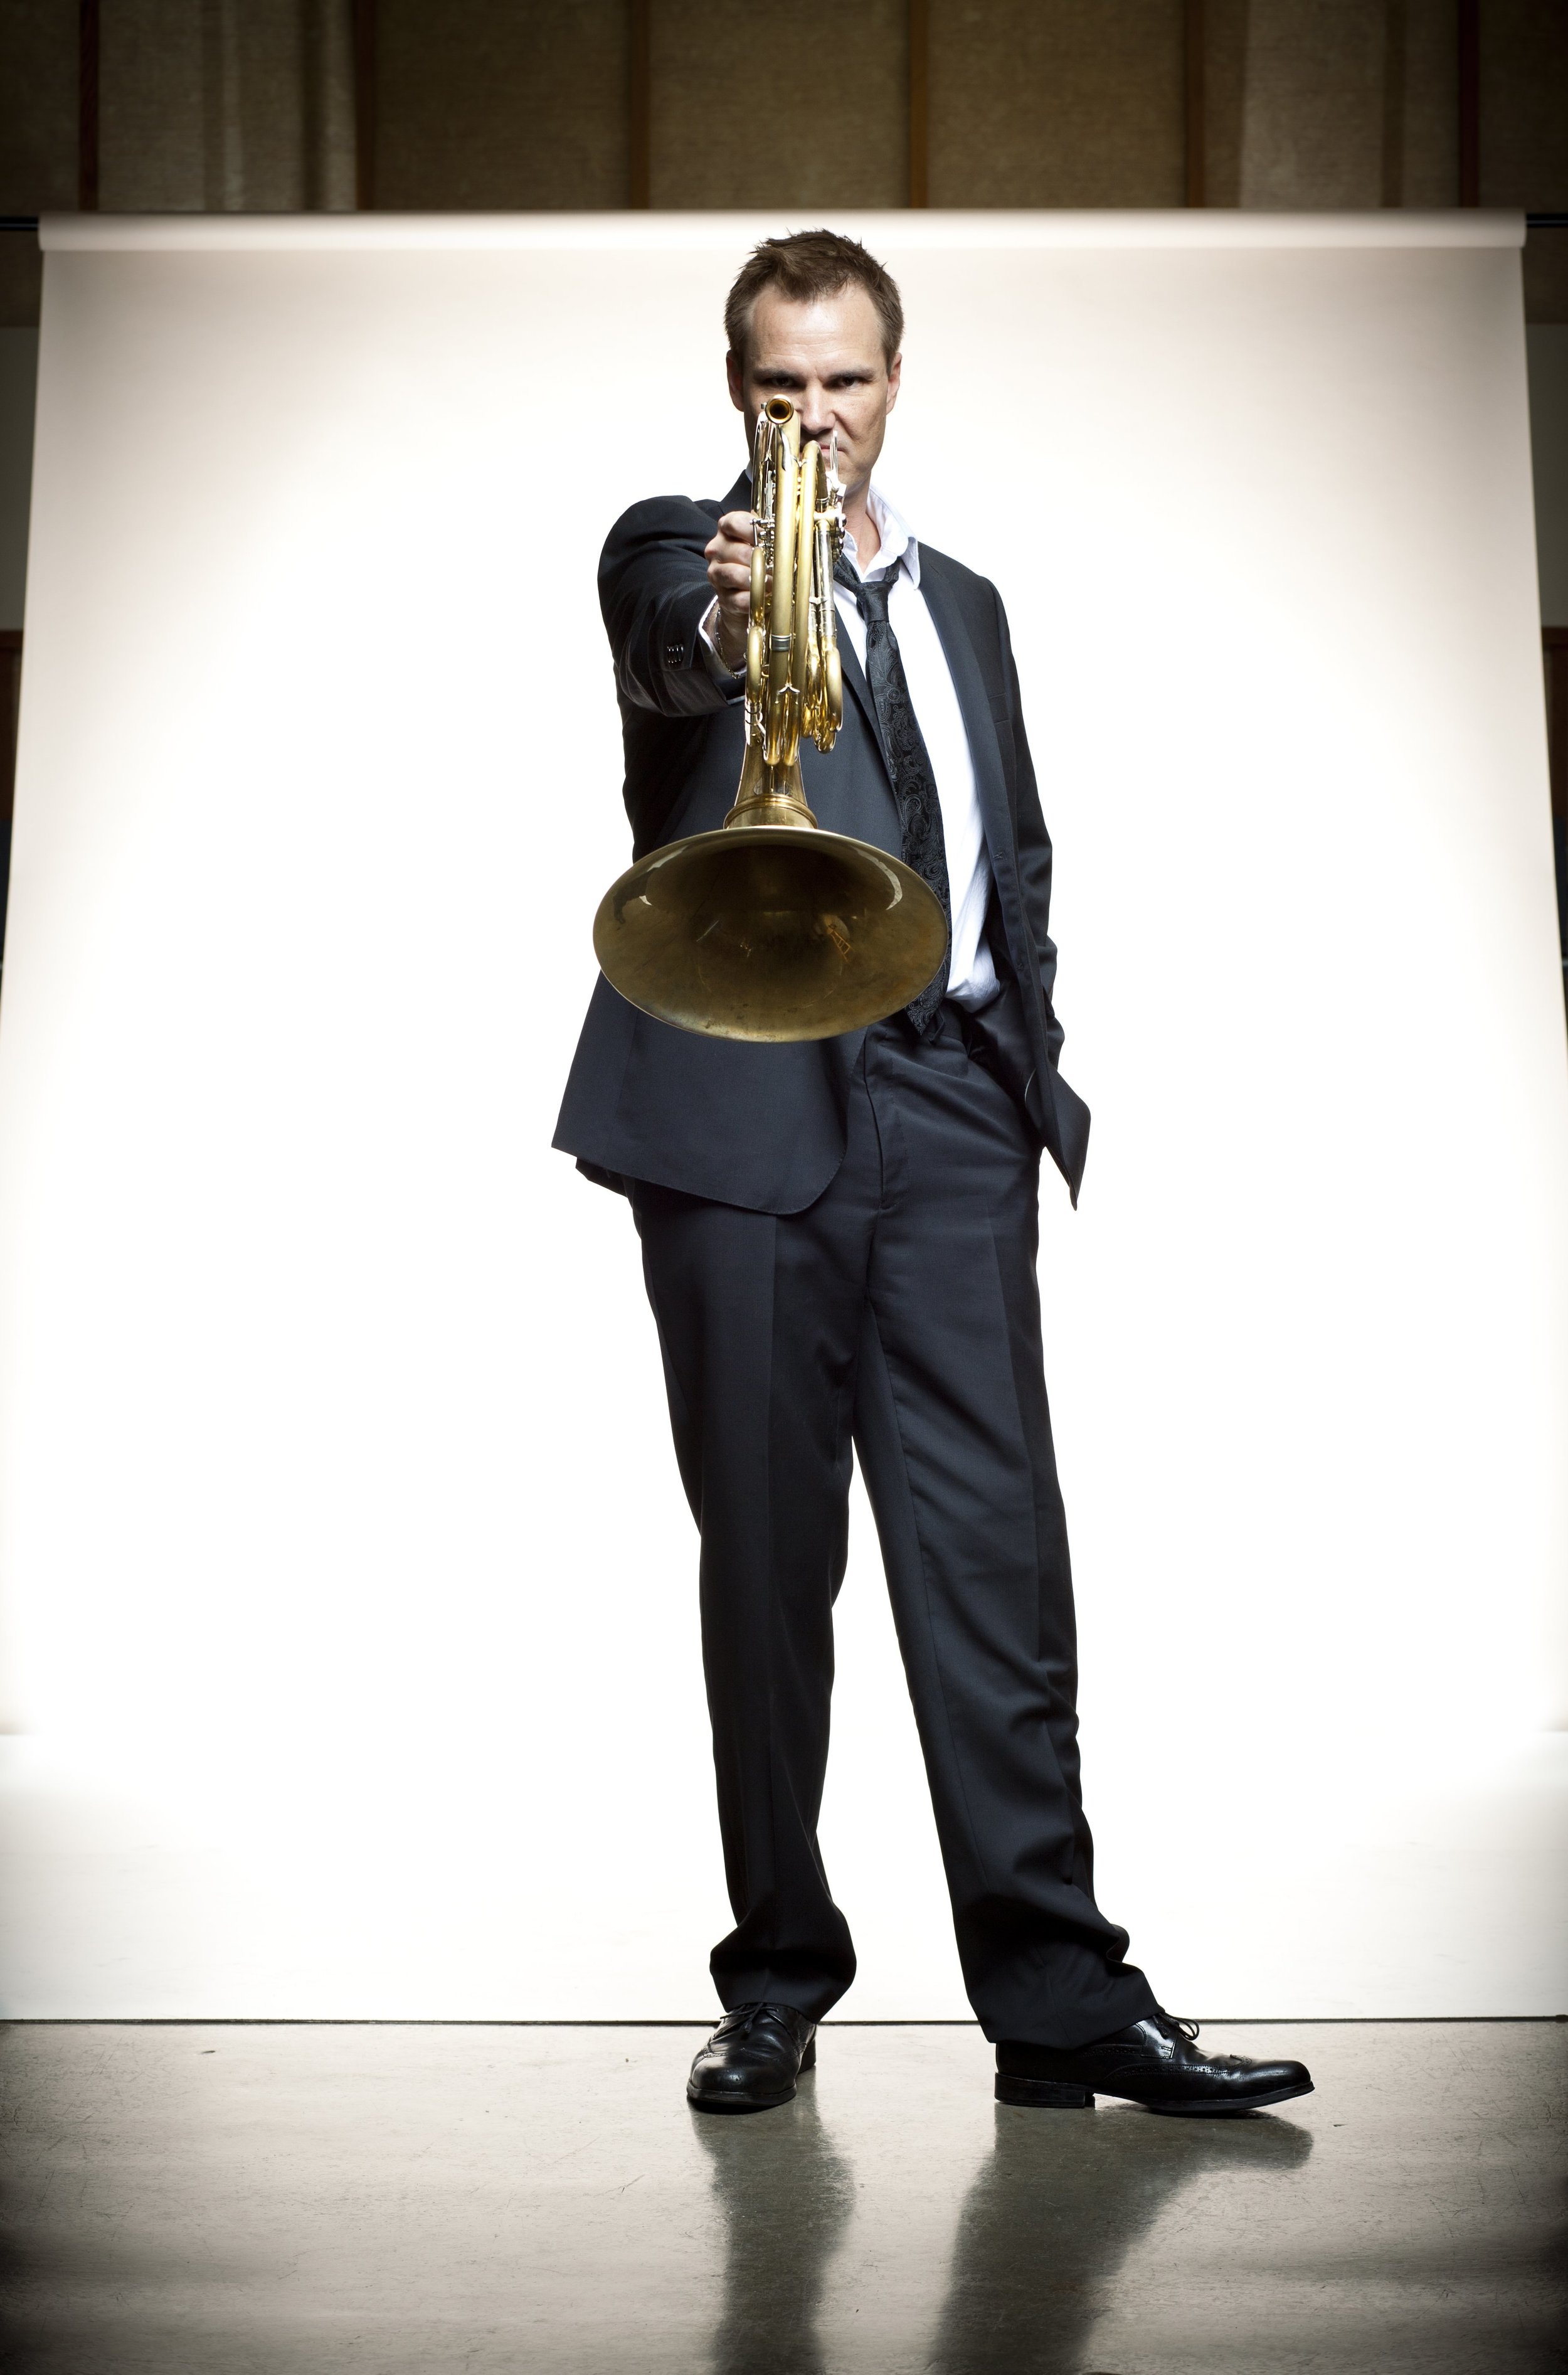 Jeff Nelsen  toured and recorded with the  Canadian Brass  for eight years, and has performed with more than a dozen orchestras including the New York and Los Angeles Philharmonics.